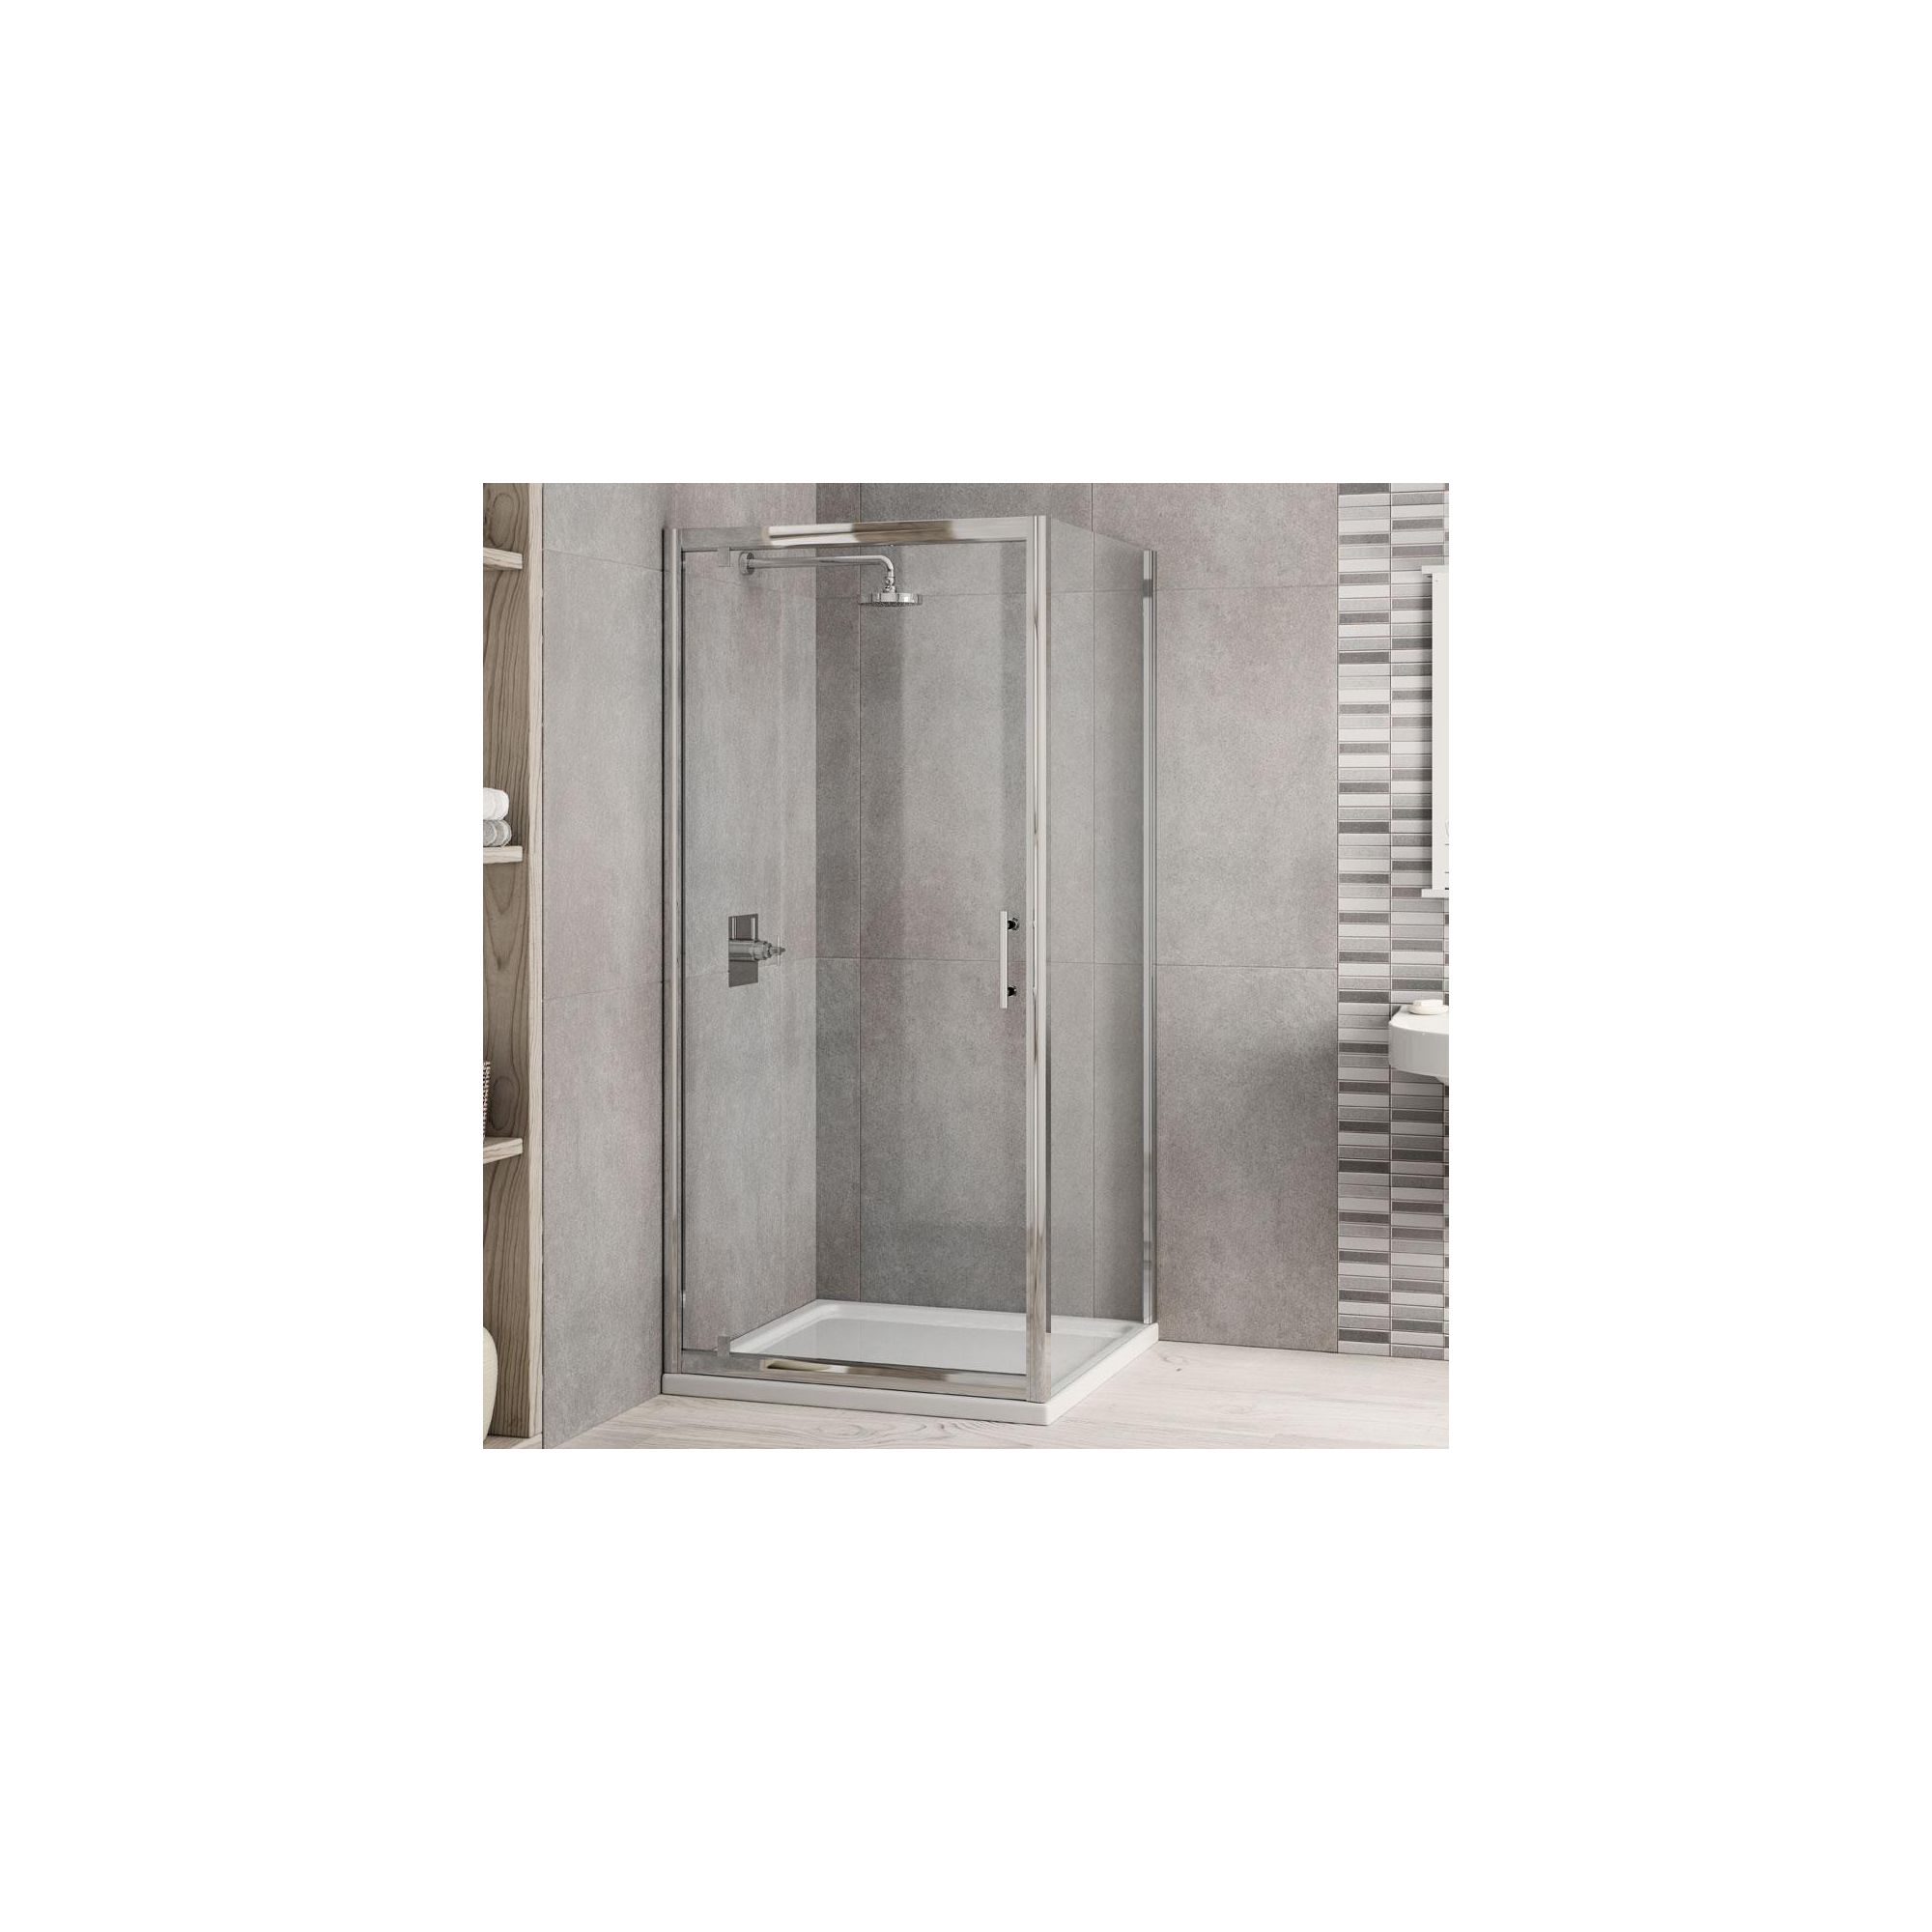 Elemis Inspire Pivot Door Shower Enclosure, 760mm x 760mm, 6mm Glass, Low Profile Tray at Tescos Direct